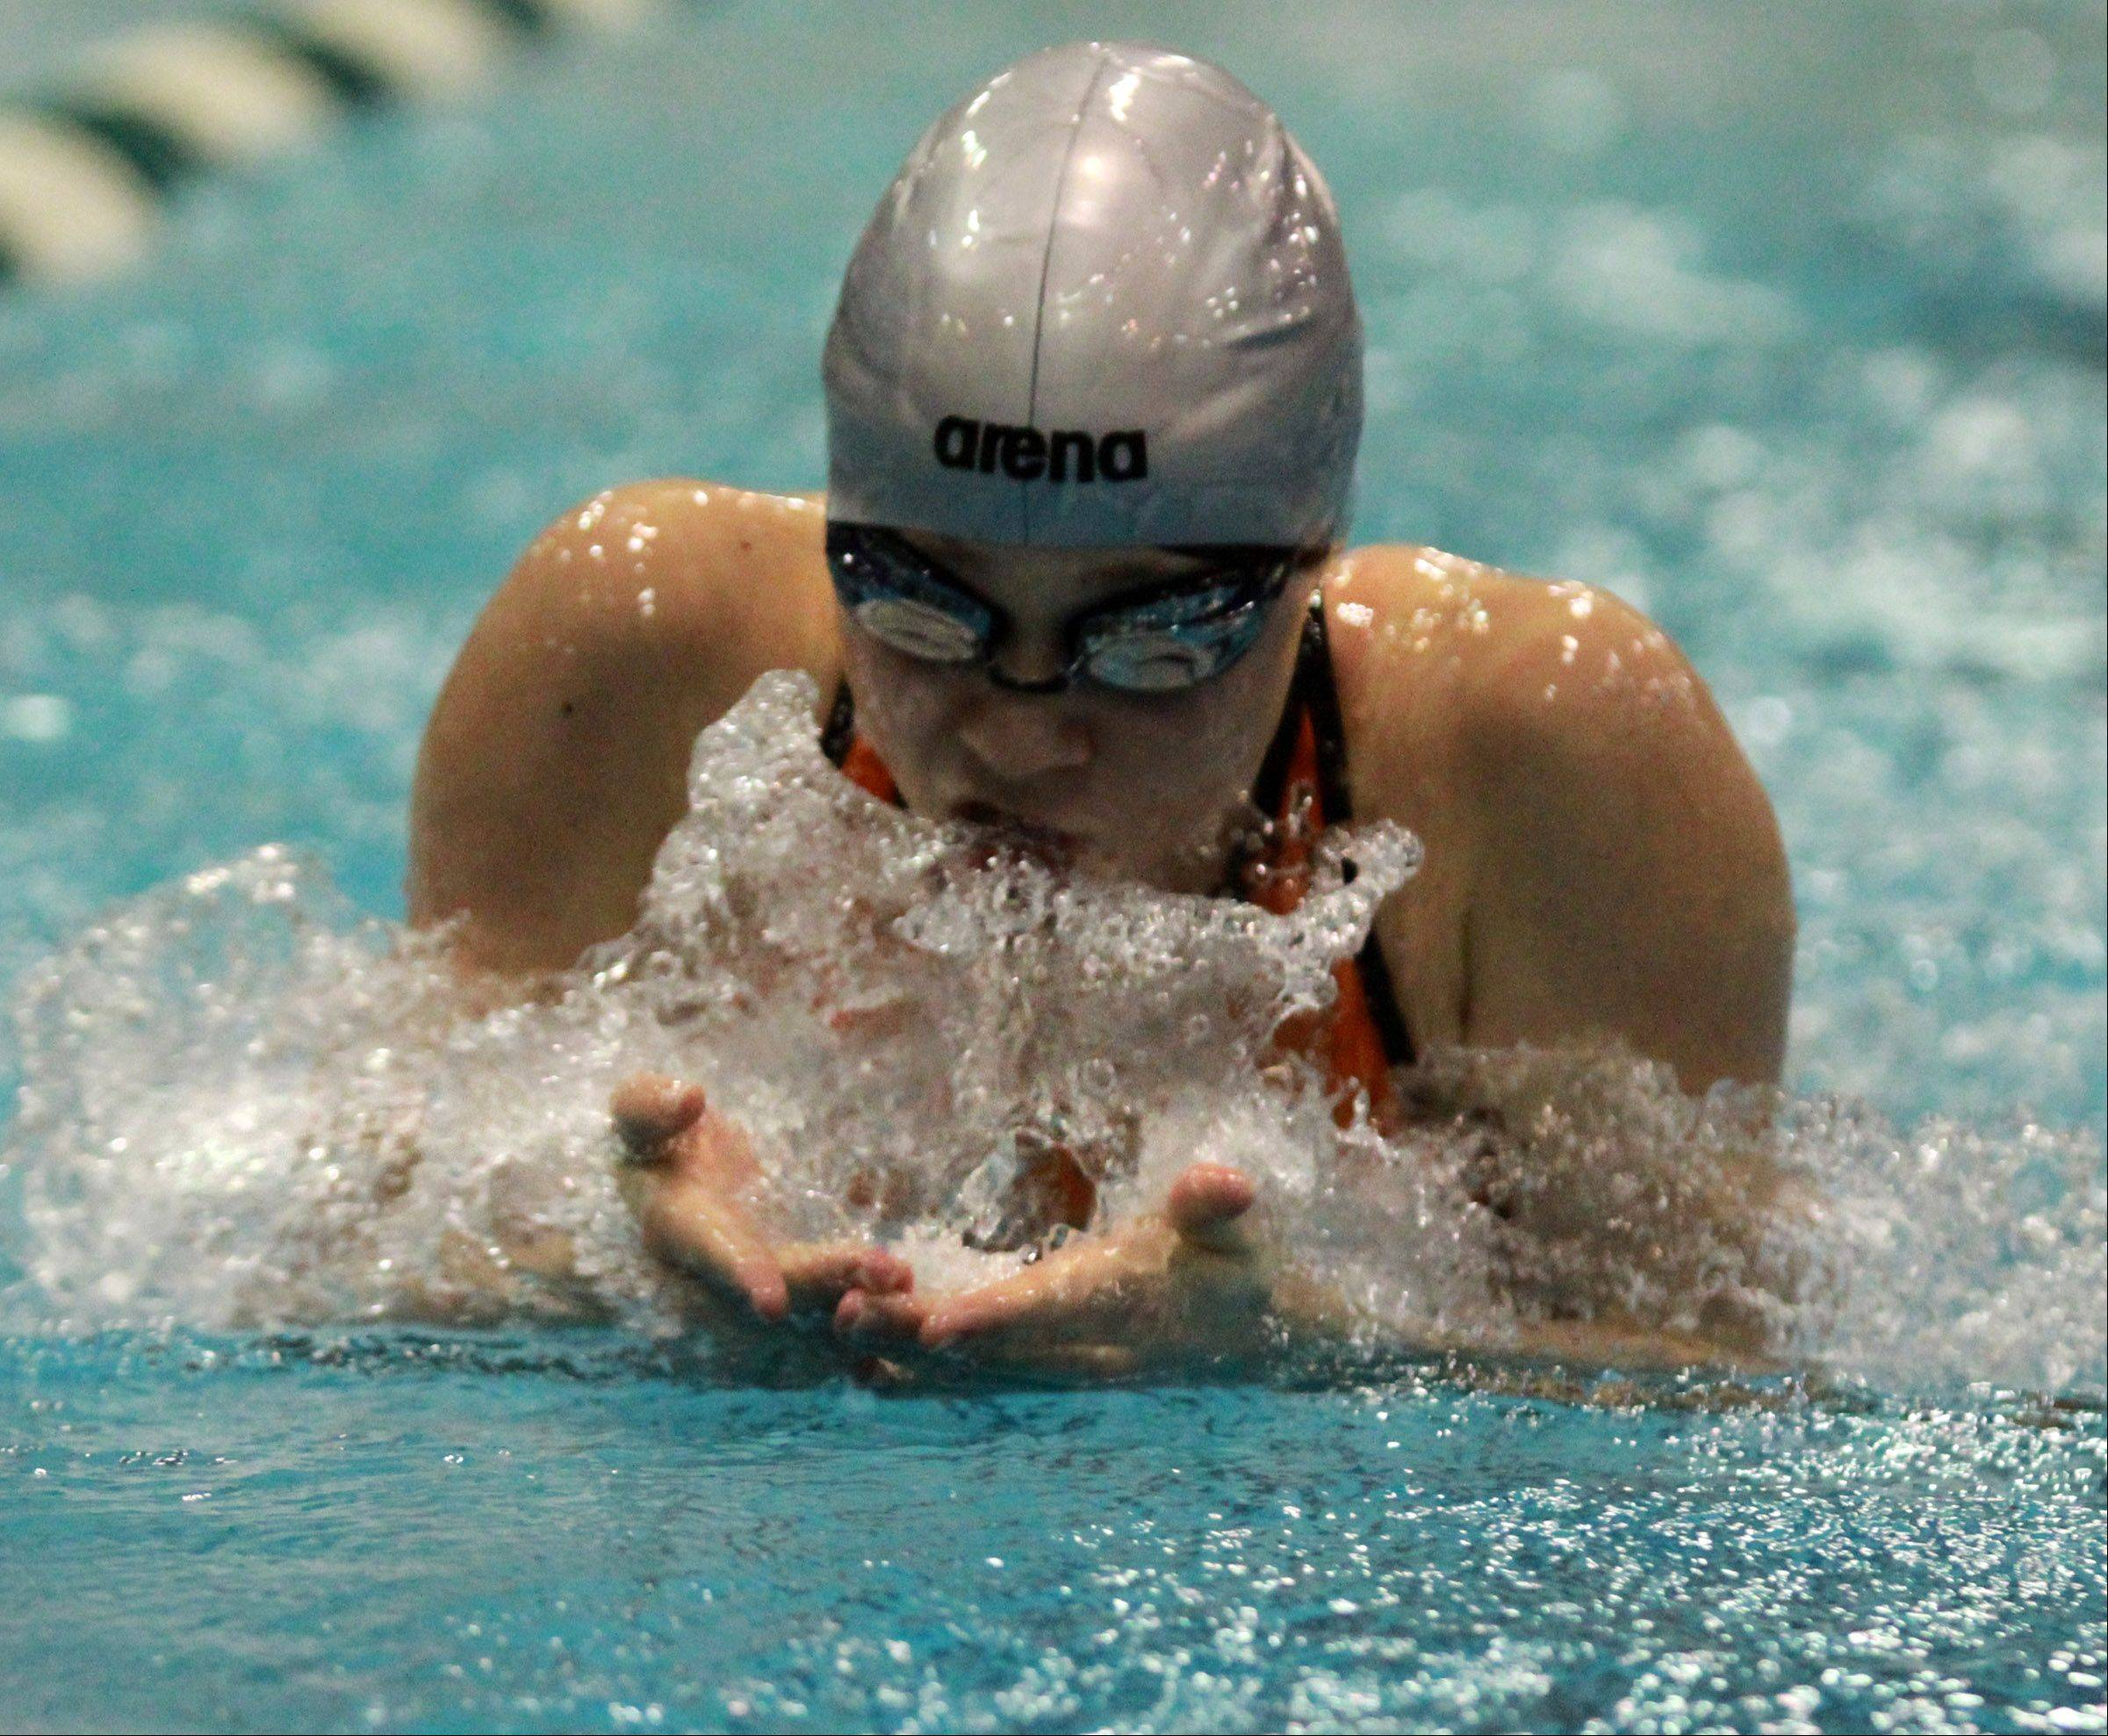 Libertyville's Macey Neubauer swims the second leg of the 200 medley relay at the girls state swimming finals on Saturday in Winnetka, where the team placed ninth.